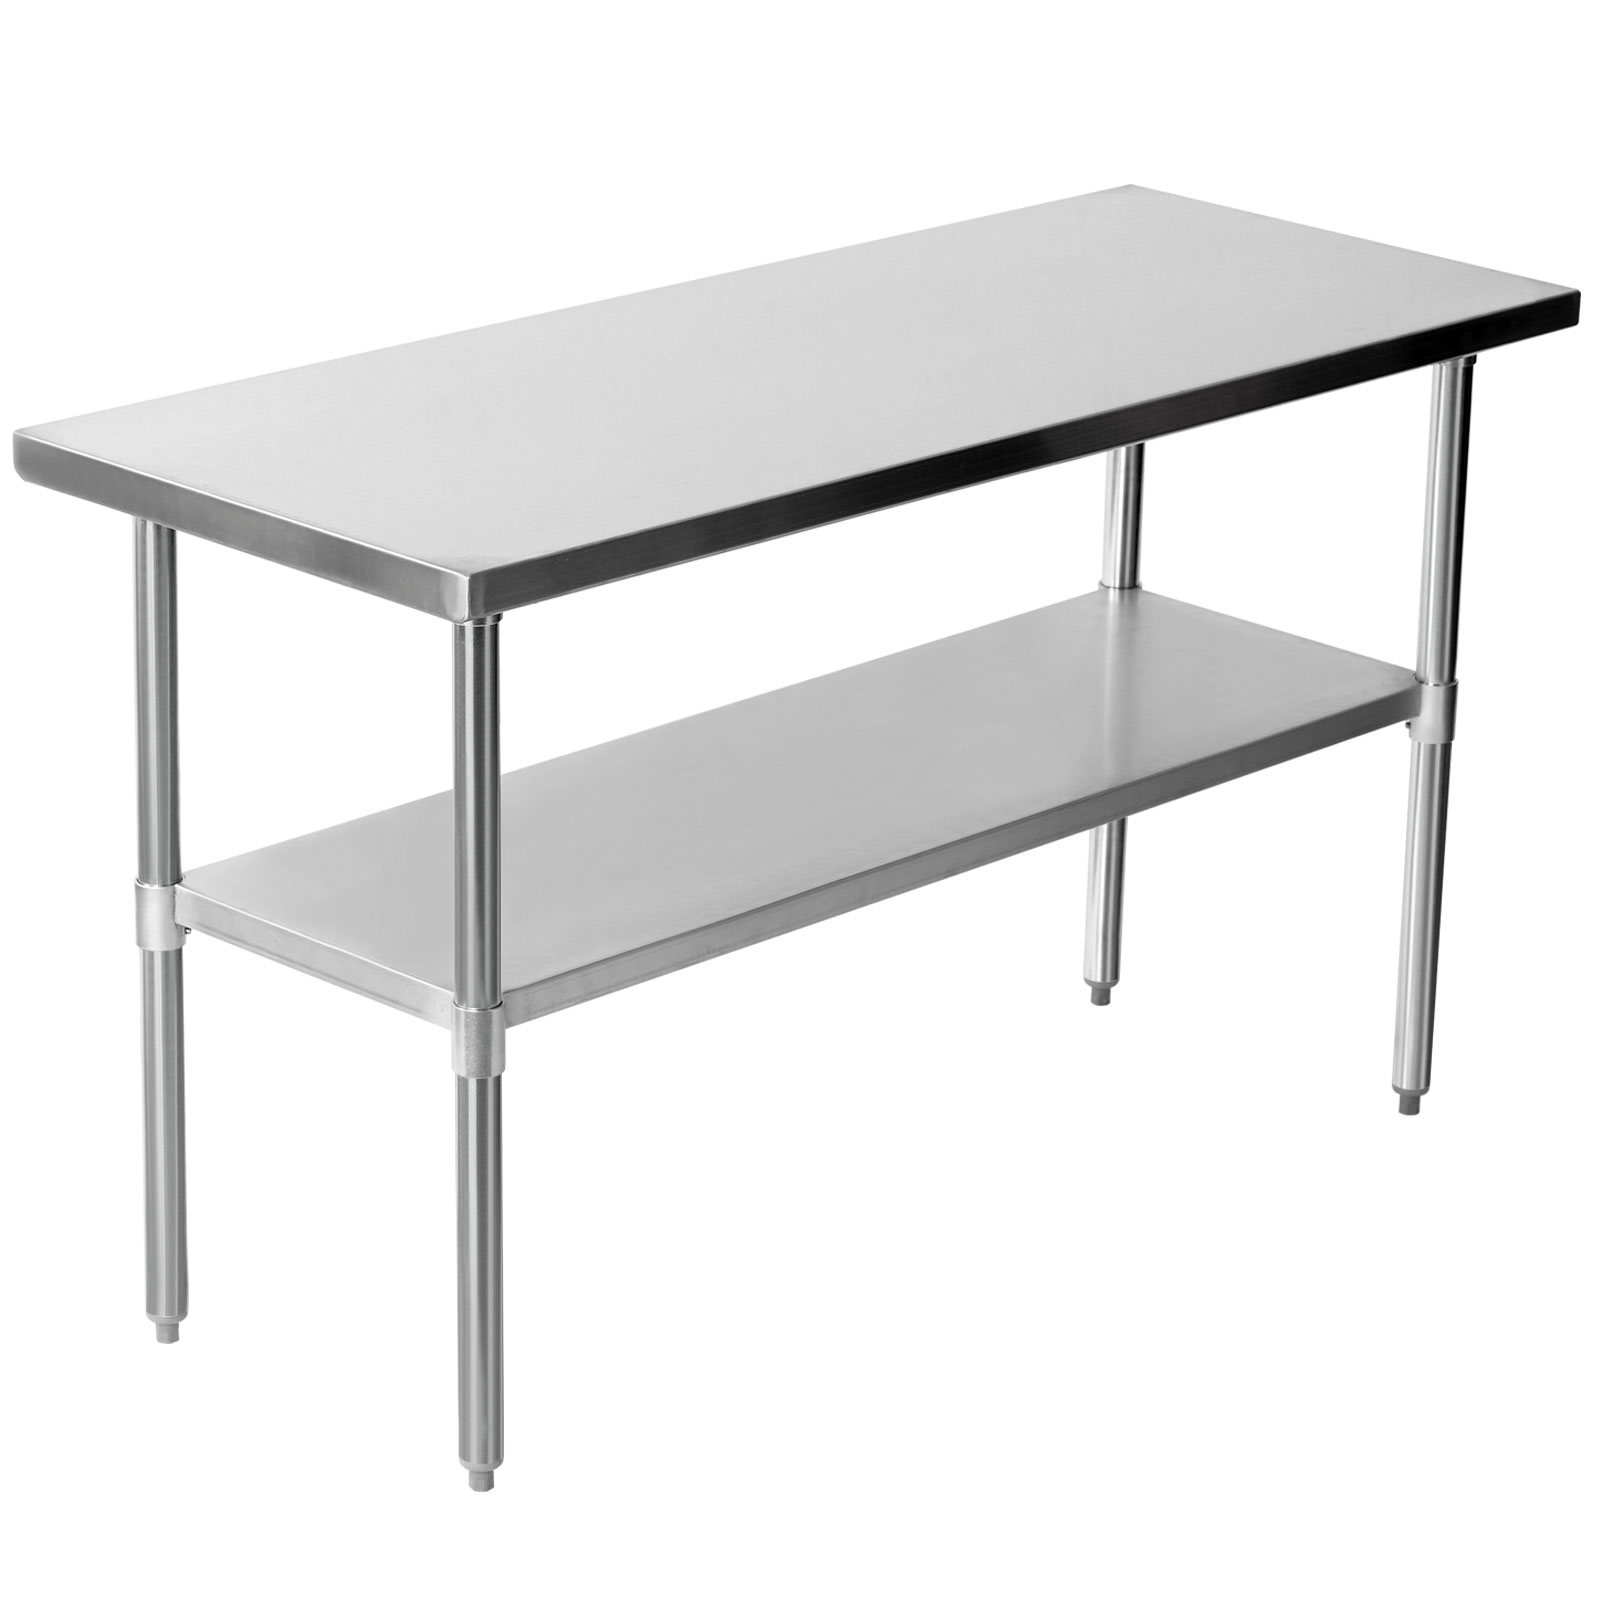 Commercial Stainless Steel Work Bench Kitchen Catering Table Shelf Backsplash Ebay